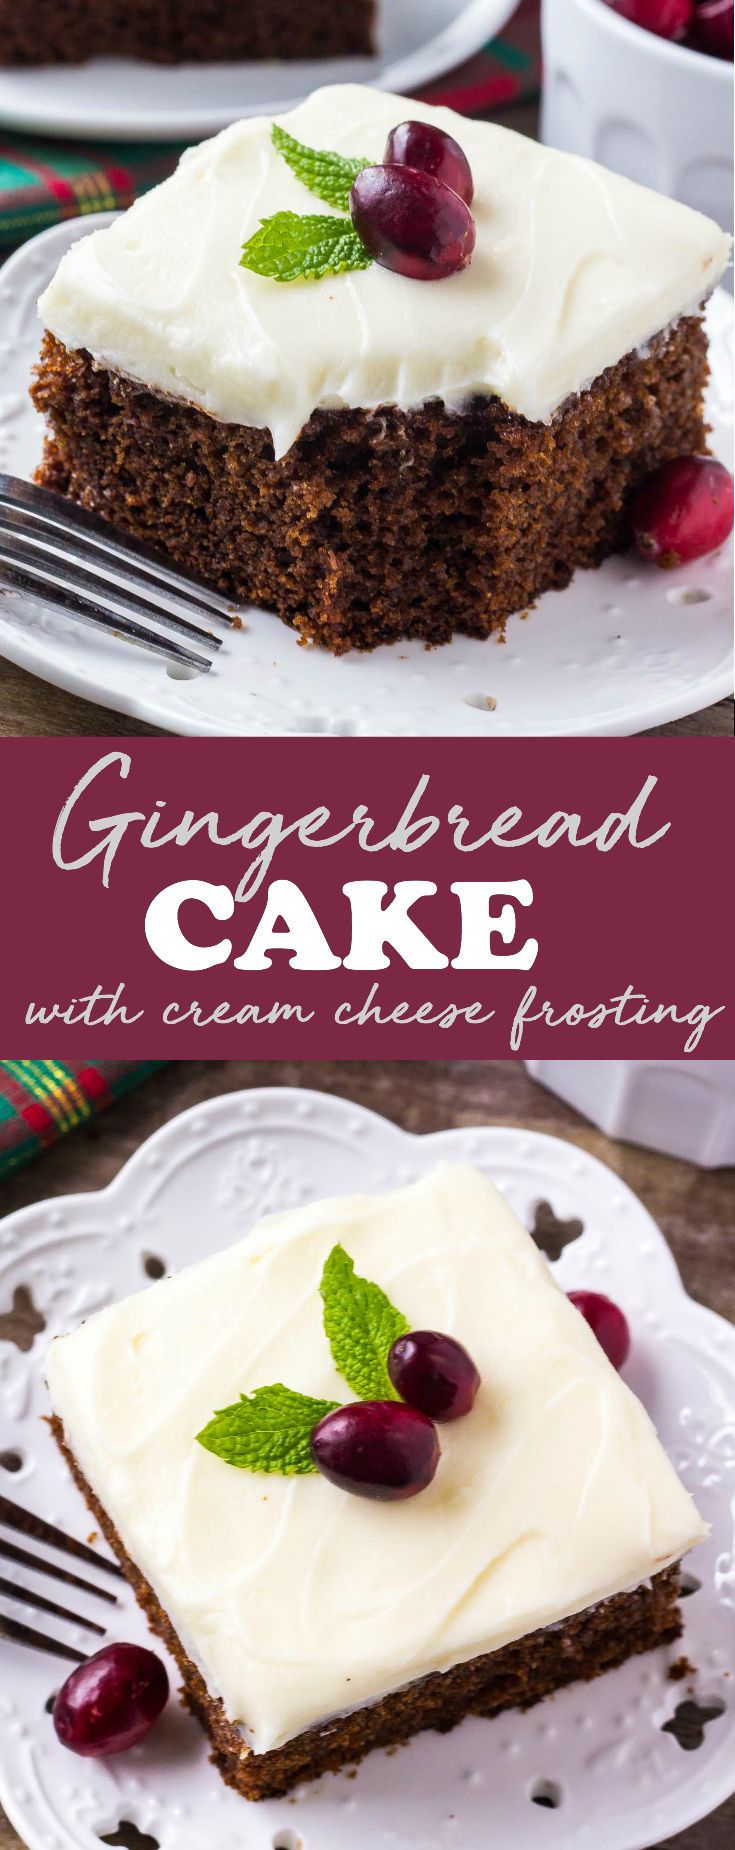 This moist gingerbread cake with cream cheese frosting is perfect for the holidays. Filled with ginger, cinnamon, brown sugar & molasses - it's packed with warm, cozy flavors. via @ohsweetbasil